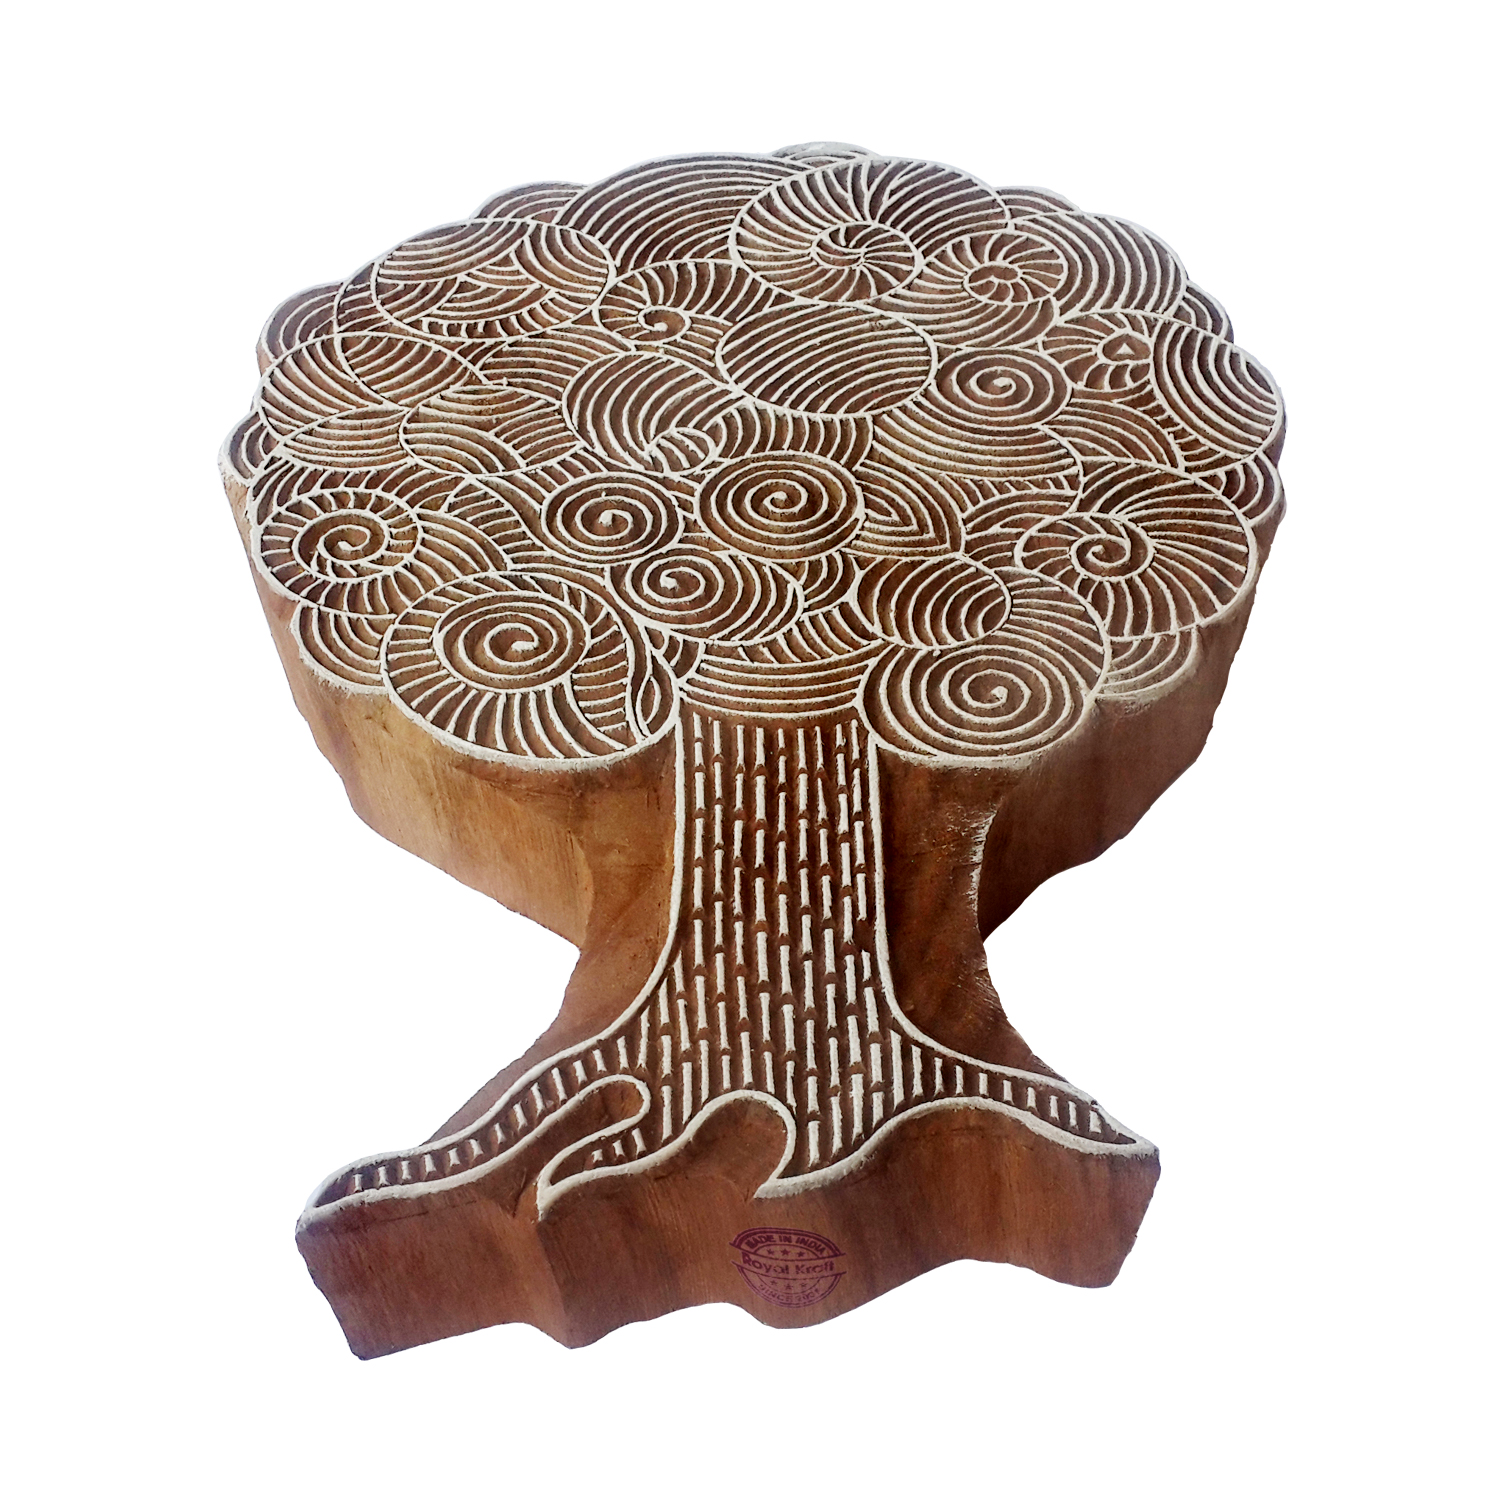 Large Tree Printing Blocks 7.9 inches